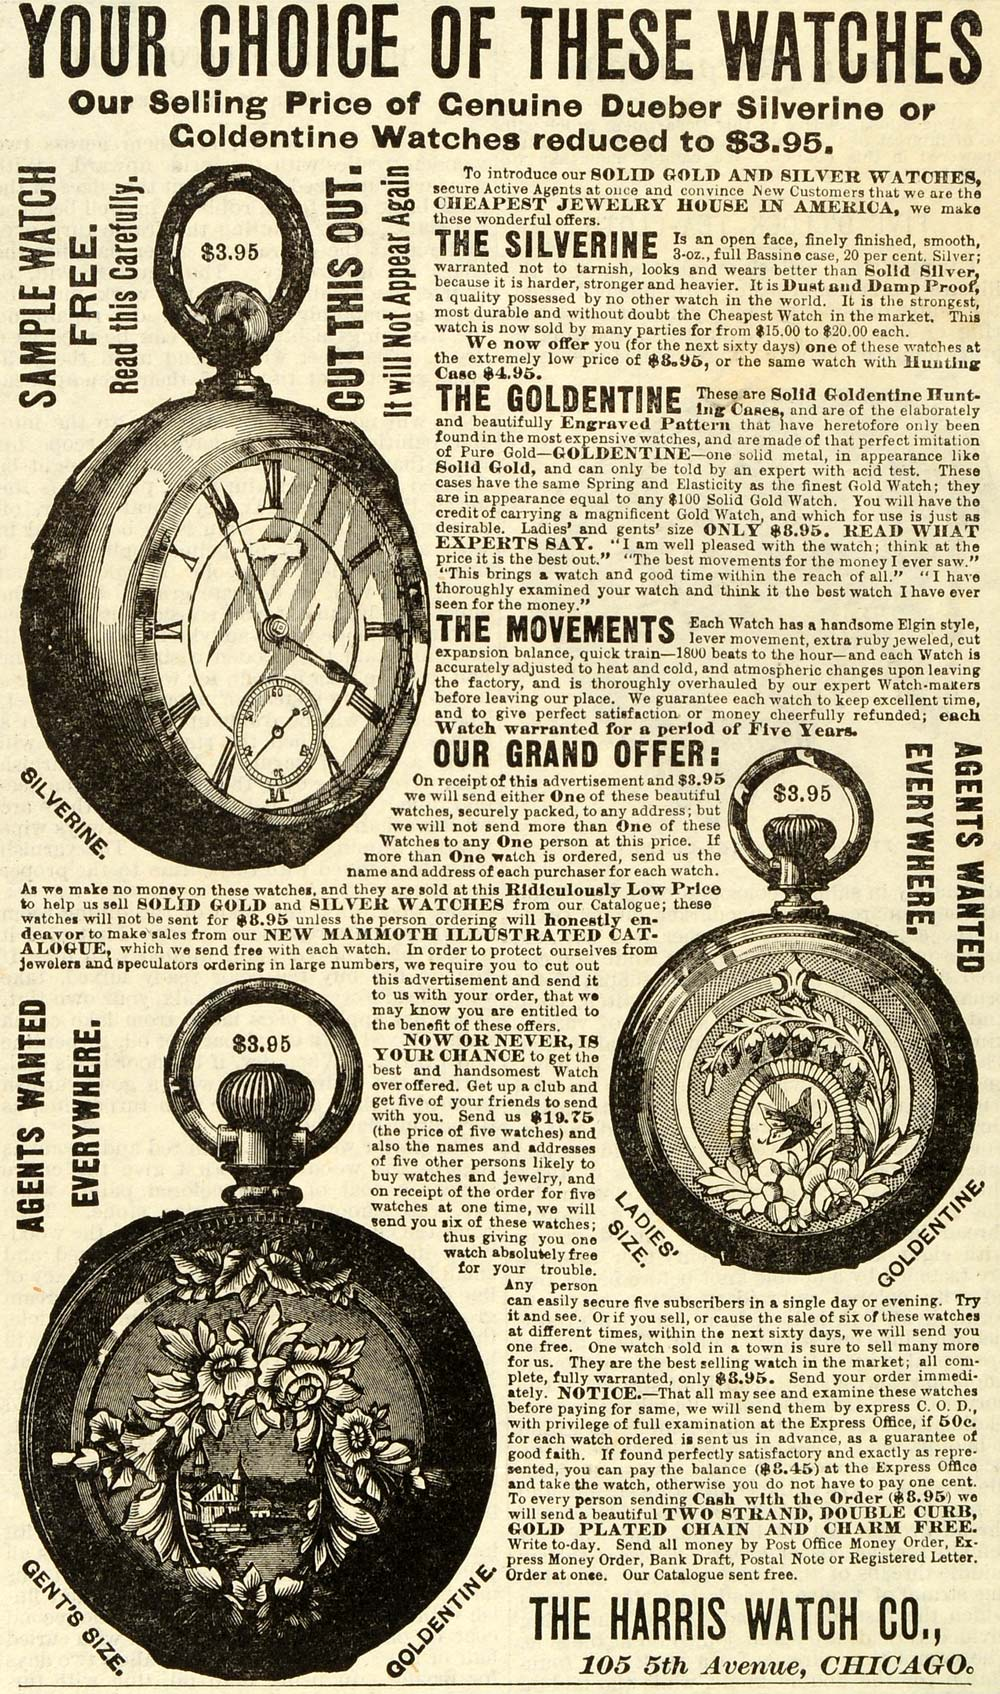 1888 Ad Harris Watch Co Chicago Goldentine Pocket Watches Silverine Jewelry MX7